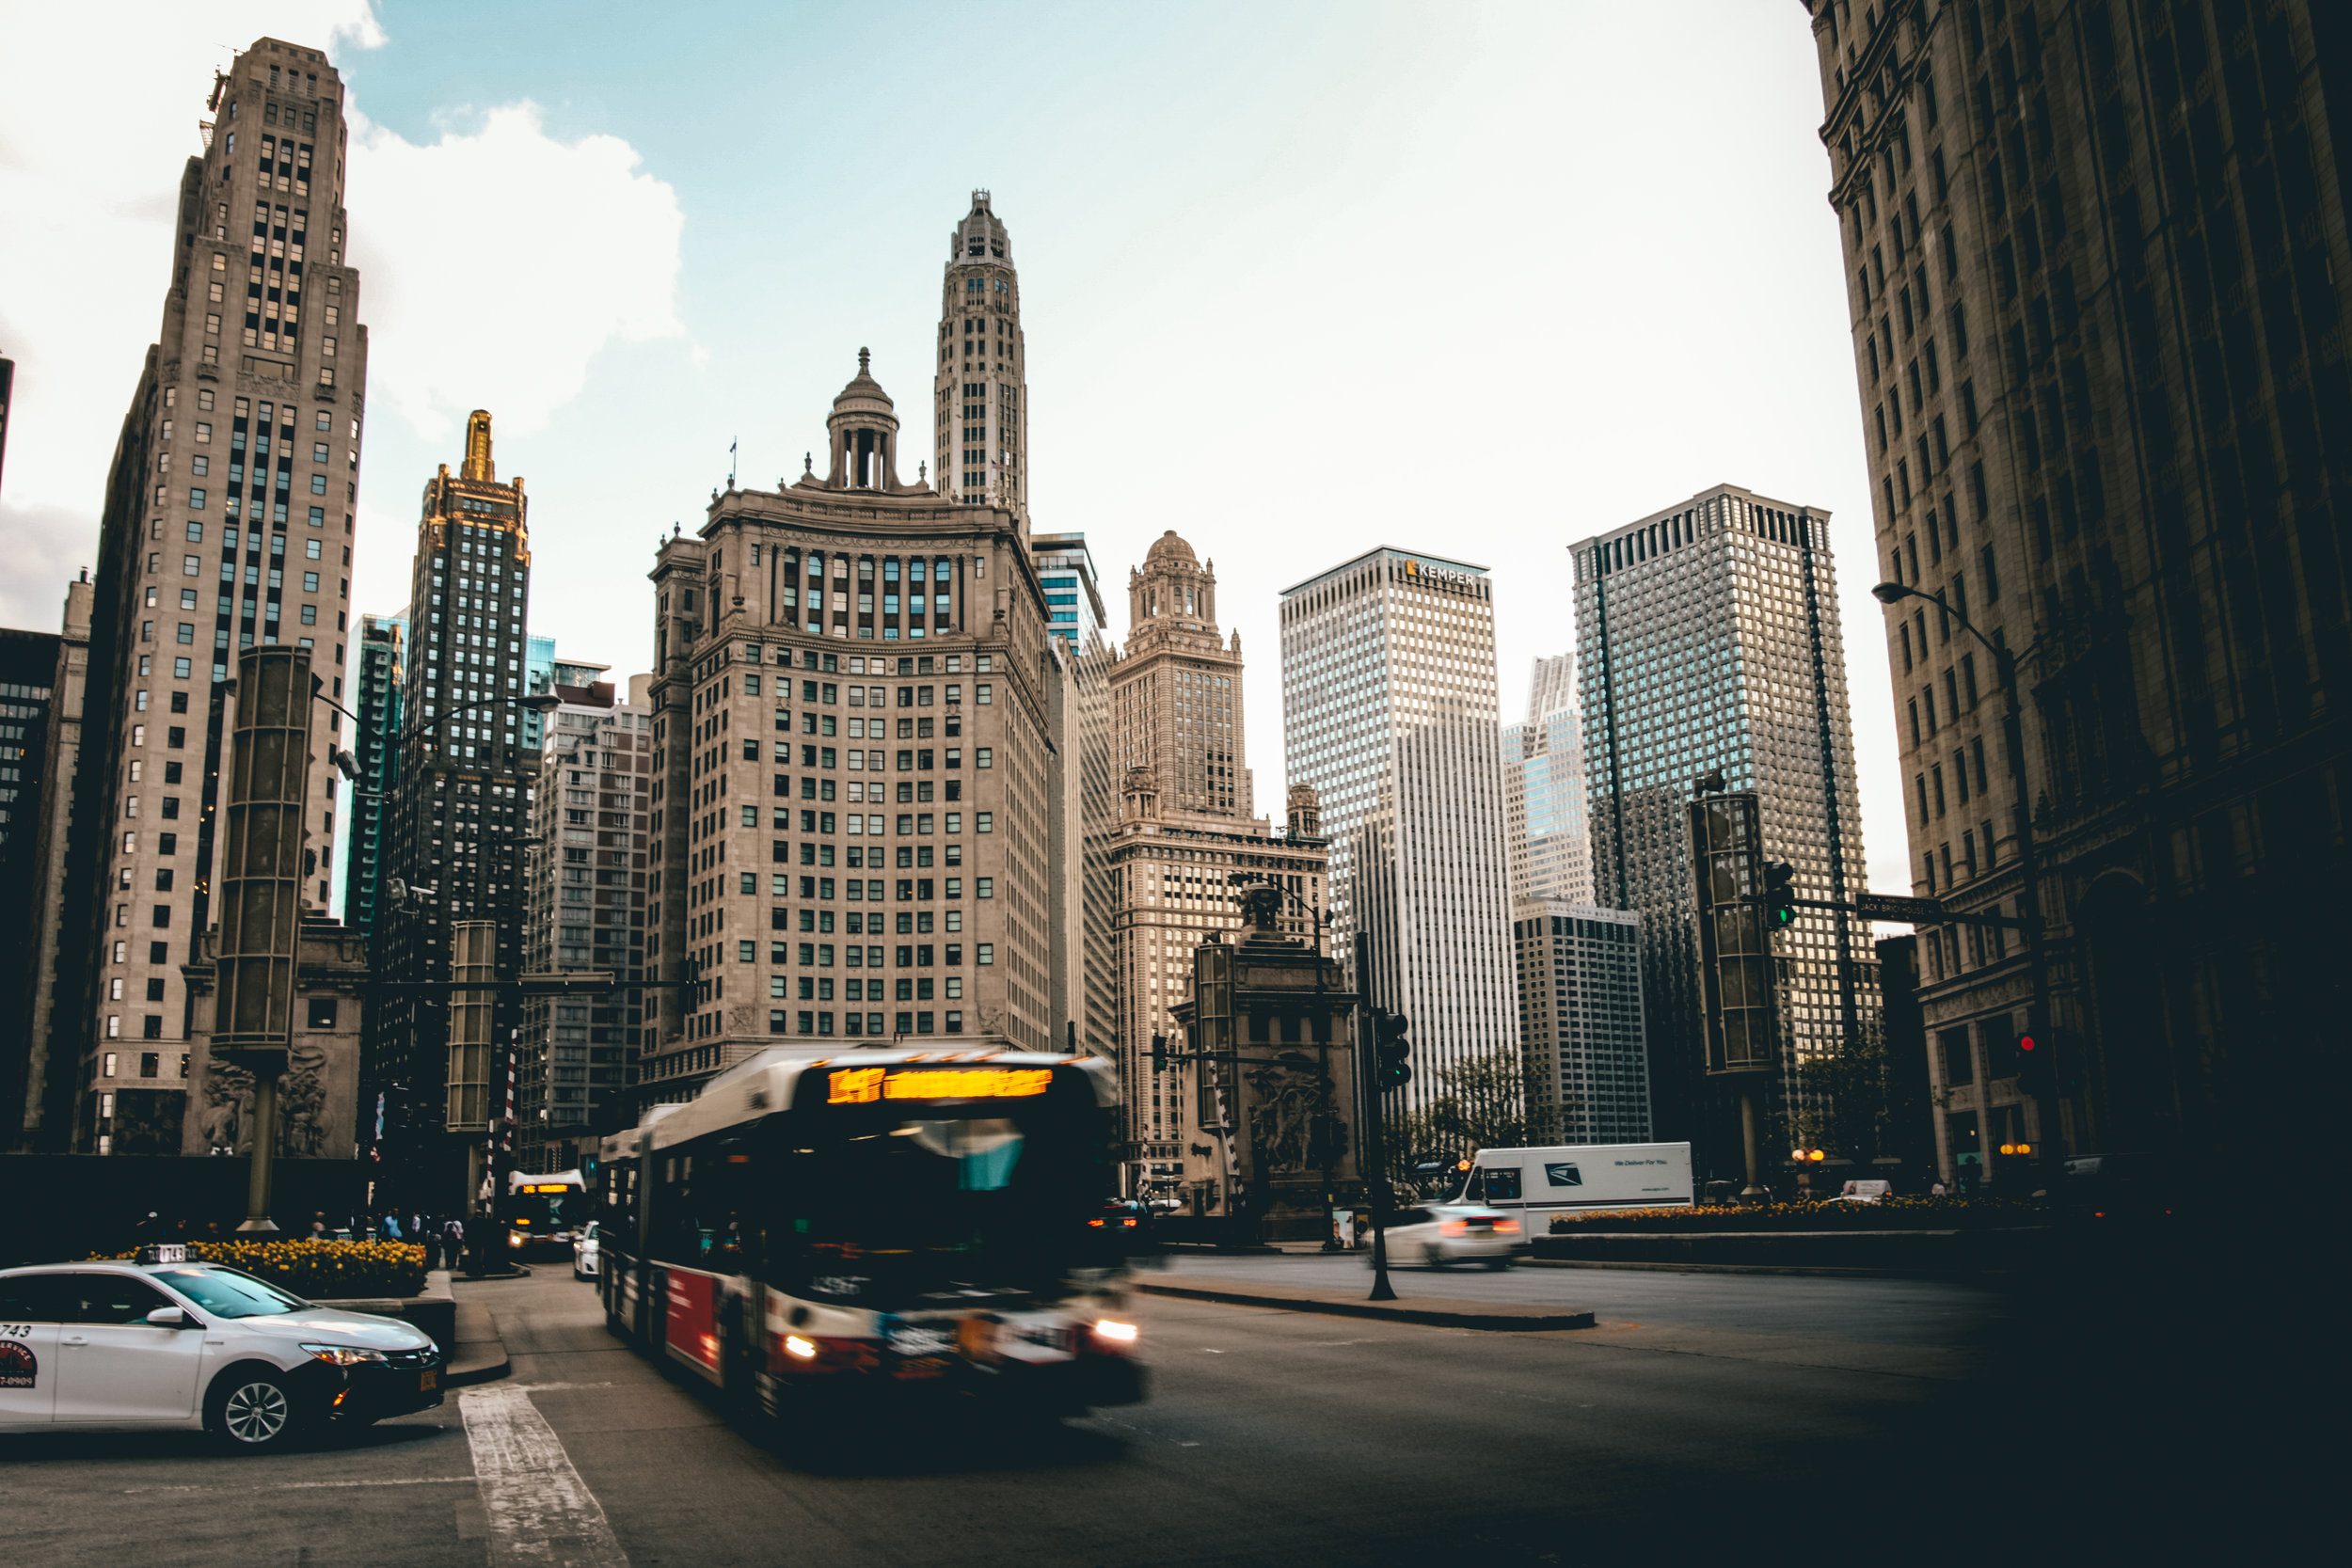 increase chicago sustainability - it's possible to redirect over 5,000 tons of clothing by connecting Chicago residents and workers in the university and hospitality industry by mobilizing the thrift experience.